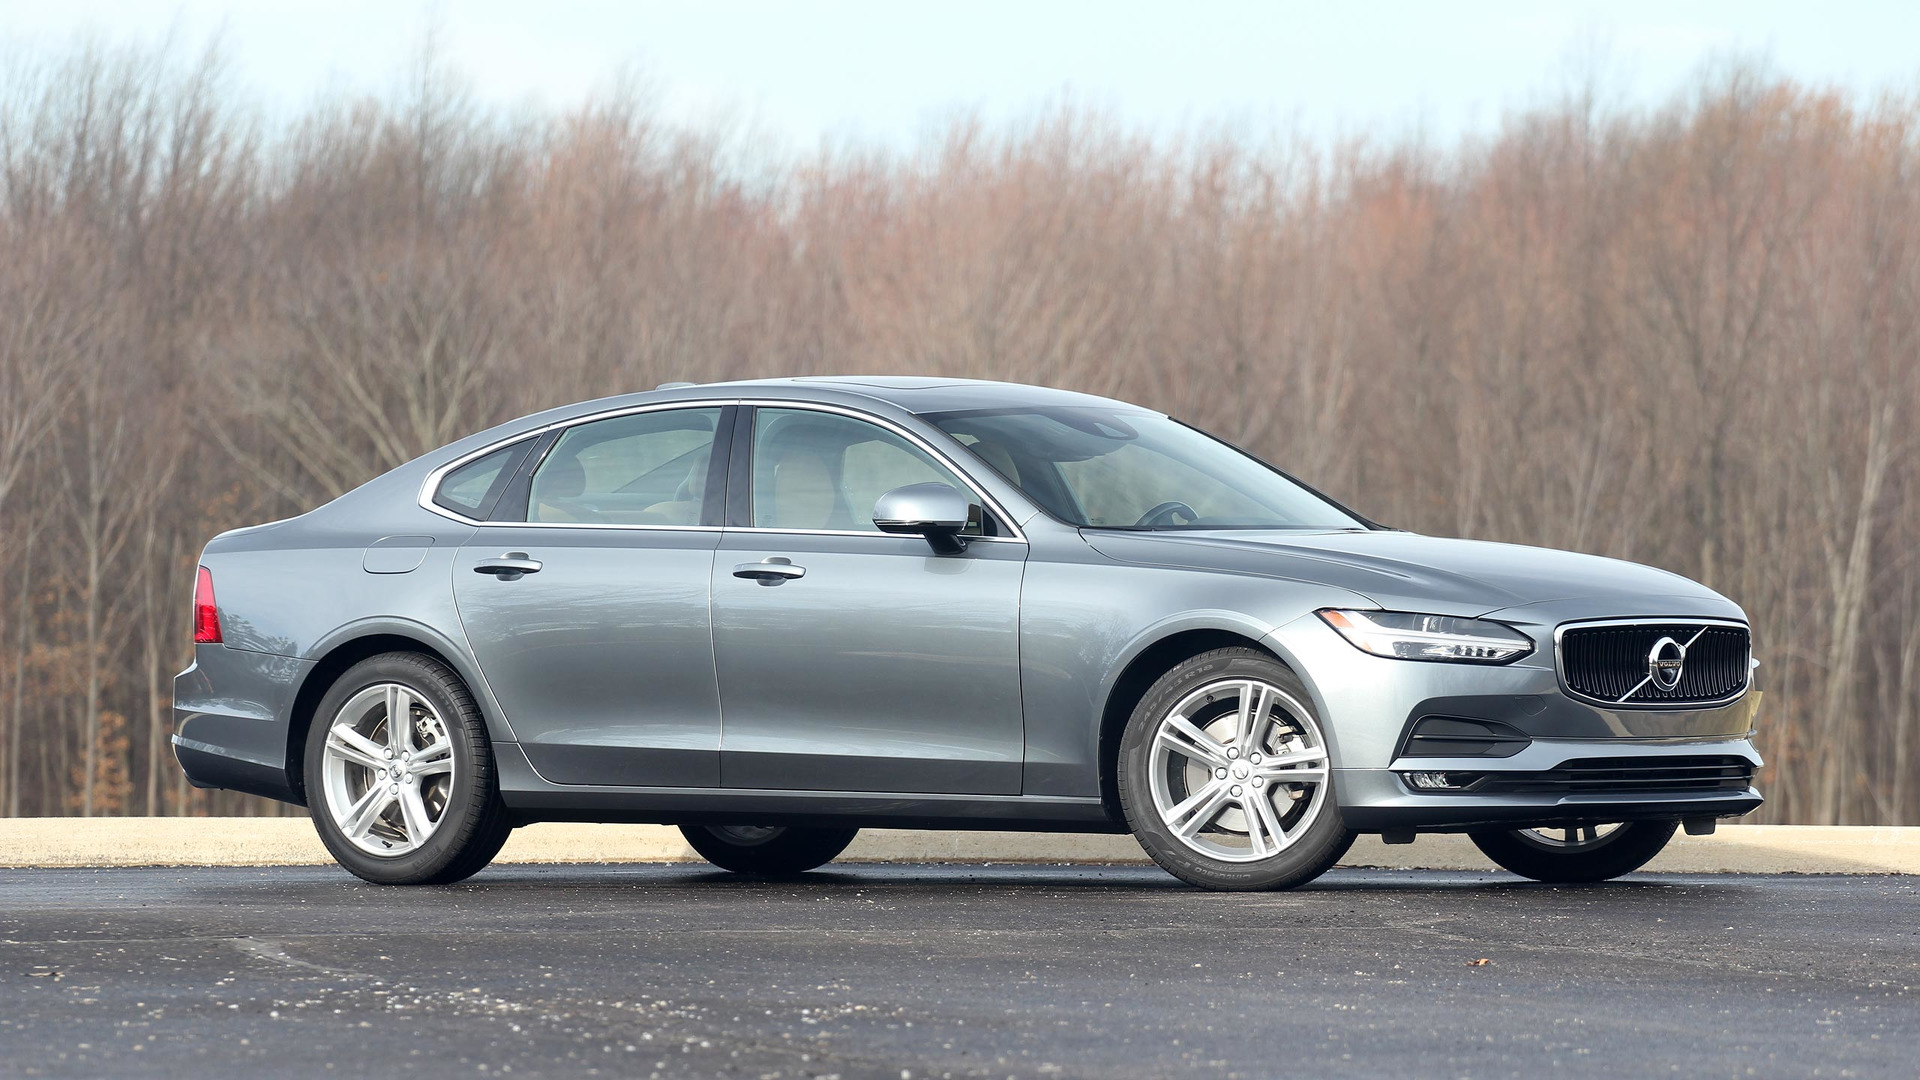 2017 volvo s90 review a superior swedish sedan. Black Bedroom Furniture Sets. Home Design Ideas